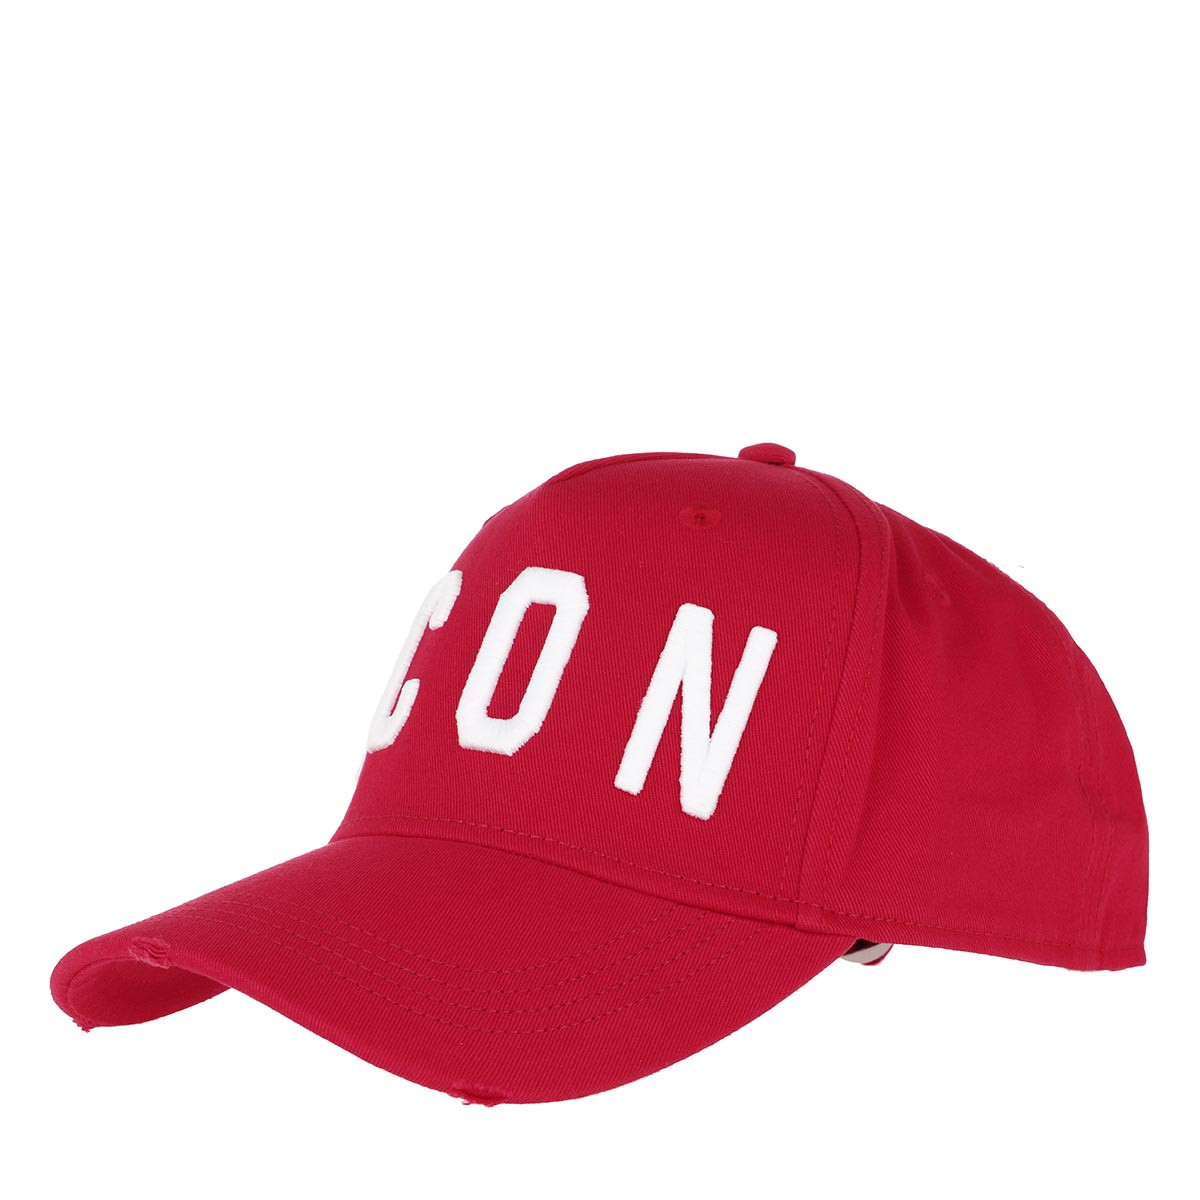 Dsquared2 Caps - Icon Baseball Cap Red/White - in rot - für Damen